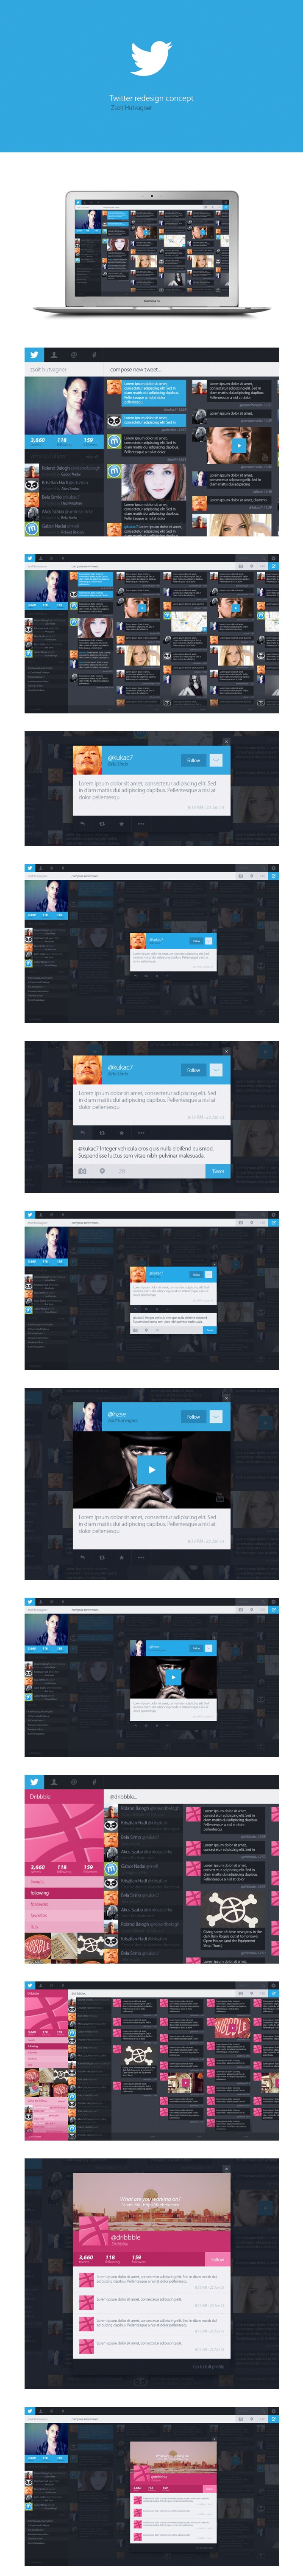 Twitter redesign concept / zsolt hutvagner. Perhaps a bit too much Windows 8, but really cool concept